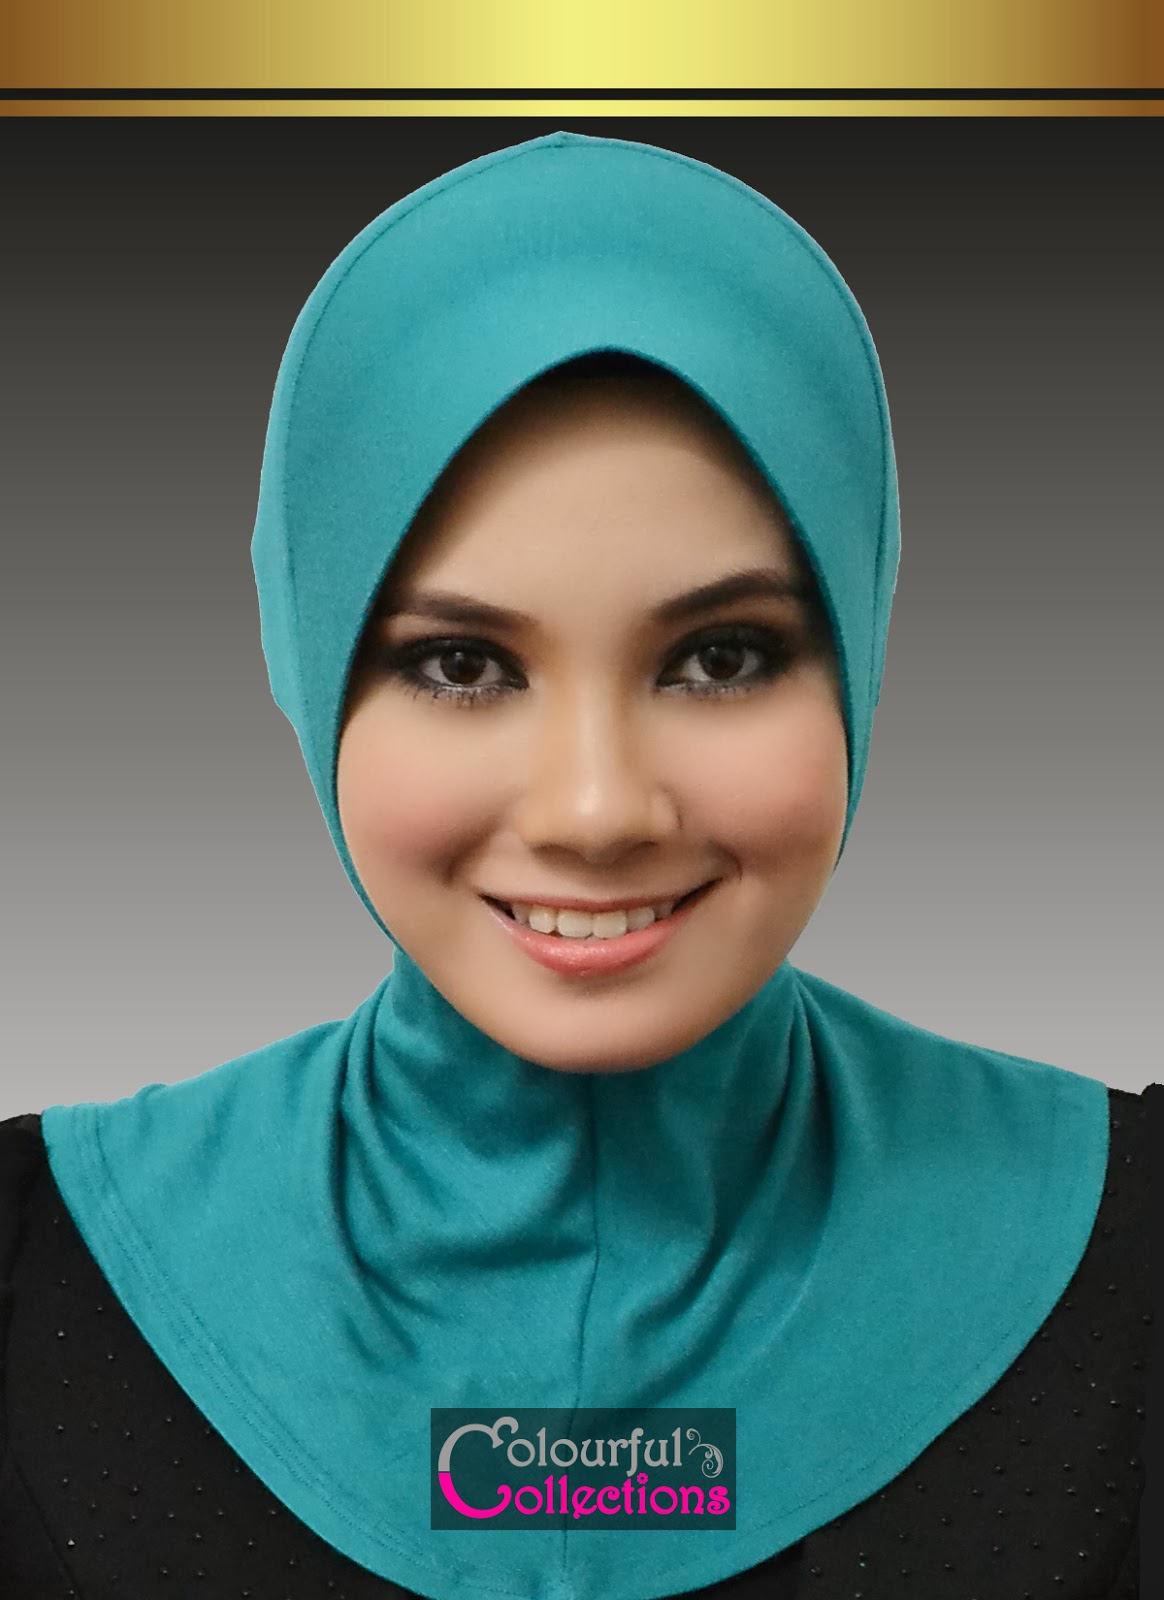 http://www.colourfulcollections.com/search/label/INNER%20NINJA%20AWNING%20AAVA